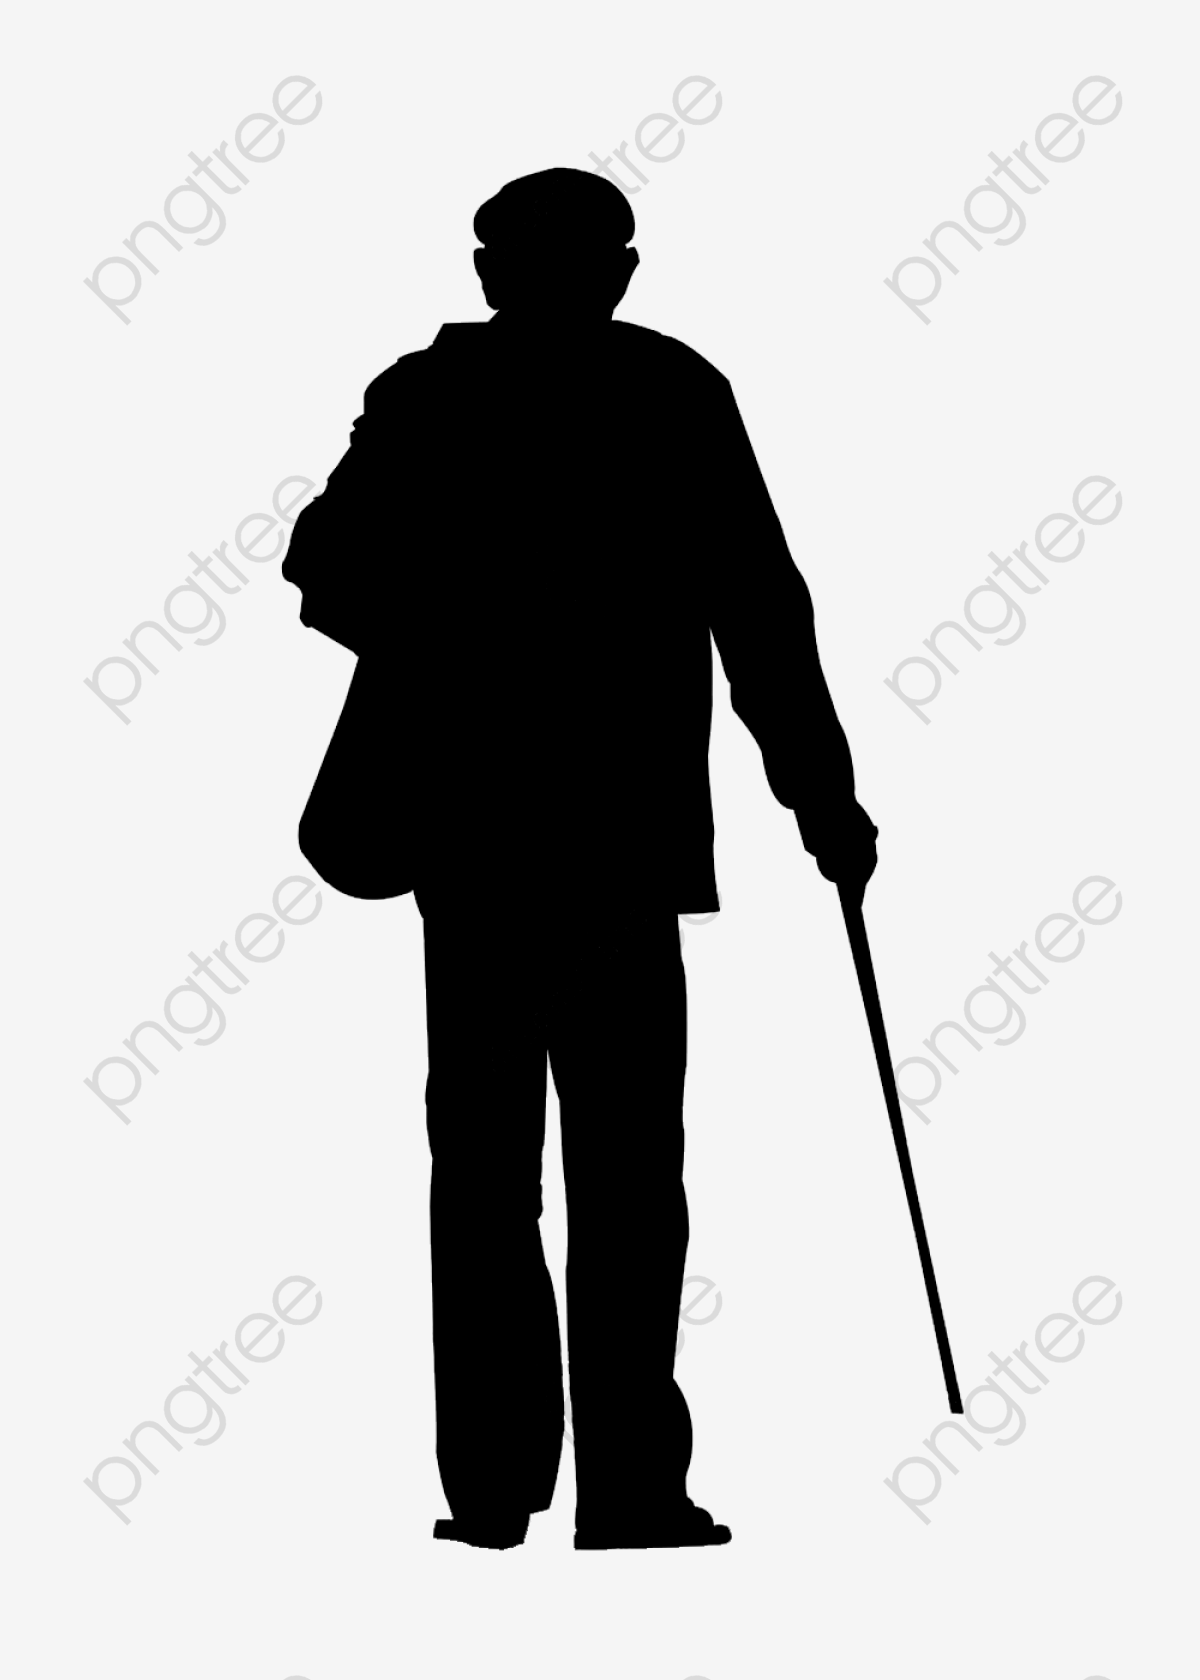 Lonely Old Man Back, Man Clipart, Old Man Back, Lonely.